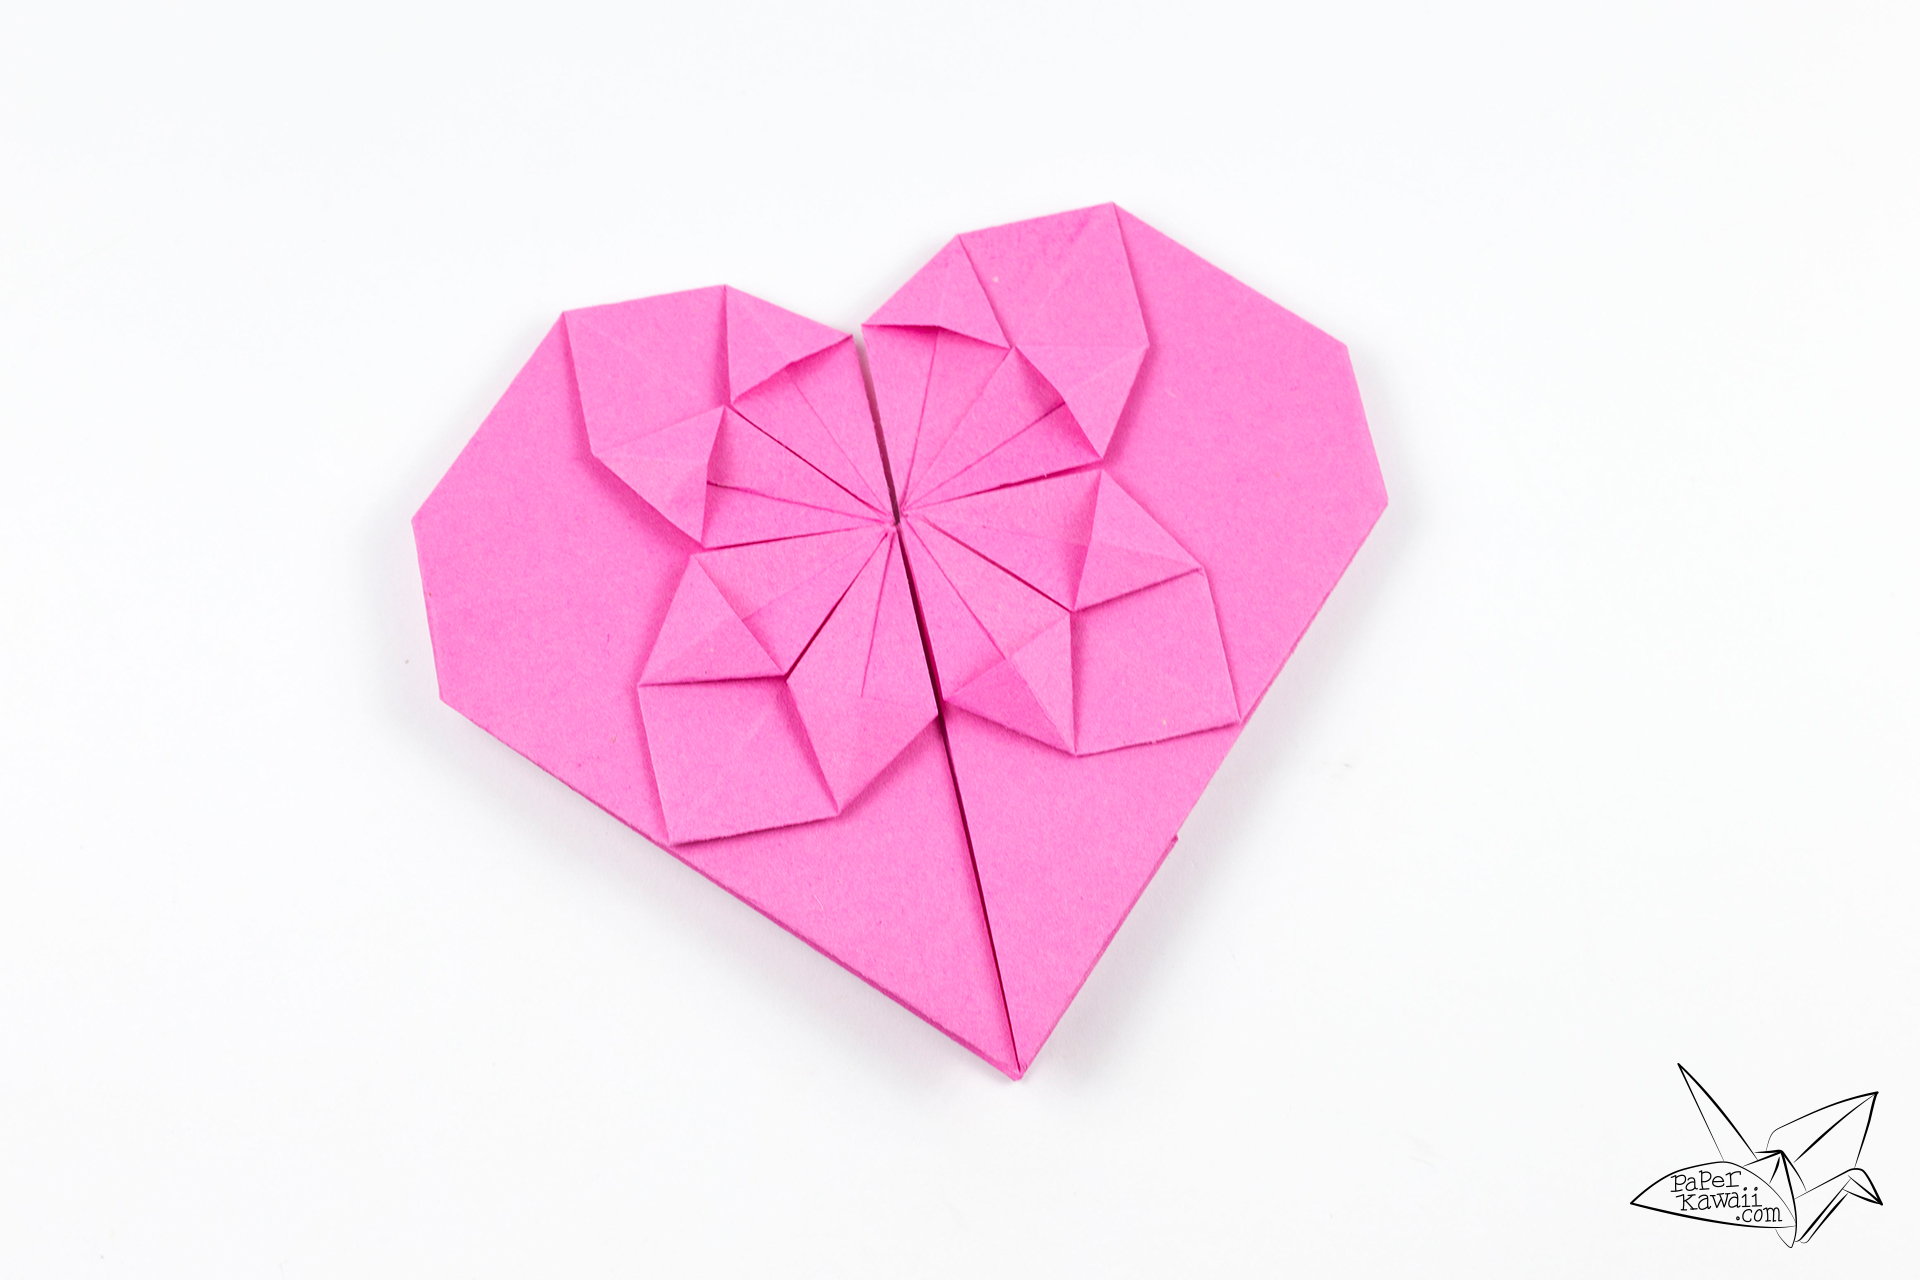 Money Origami Heart Tutorial for Valentine's Day - Paper ... - photo#33